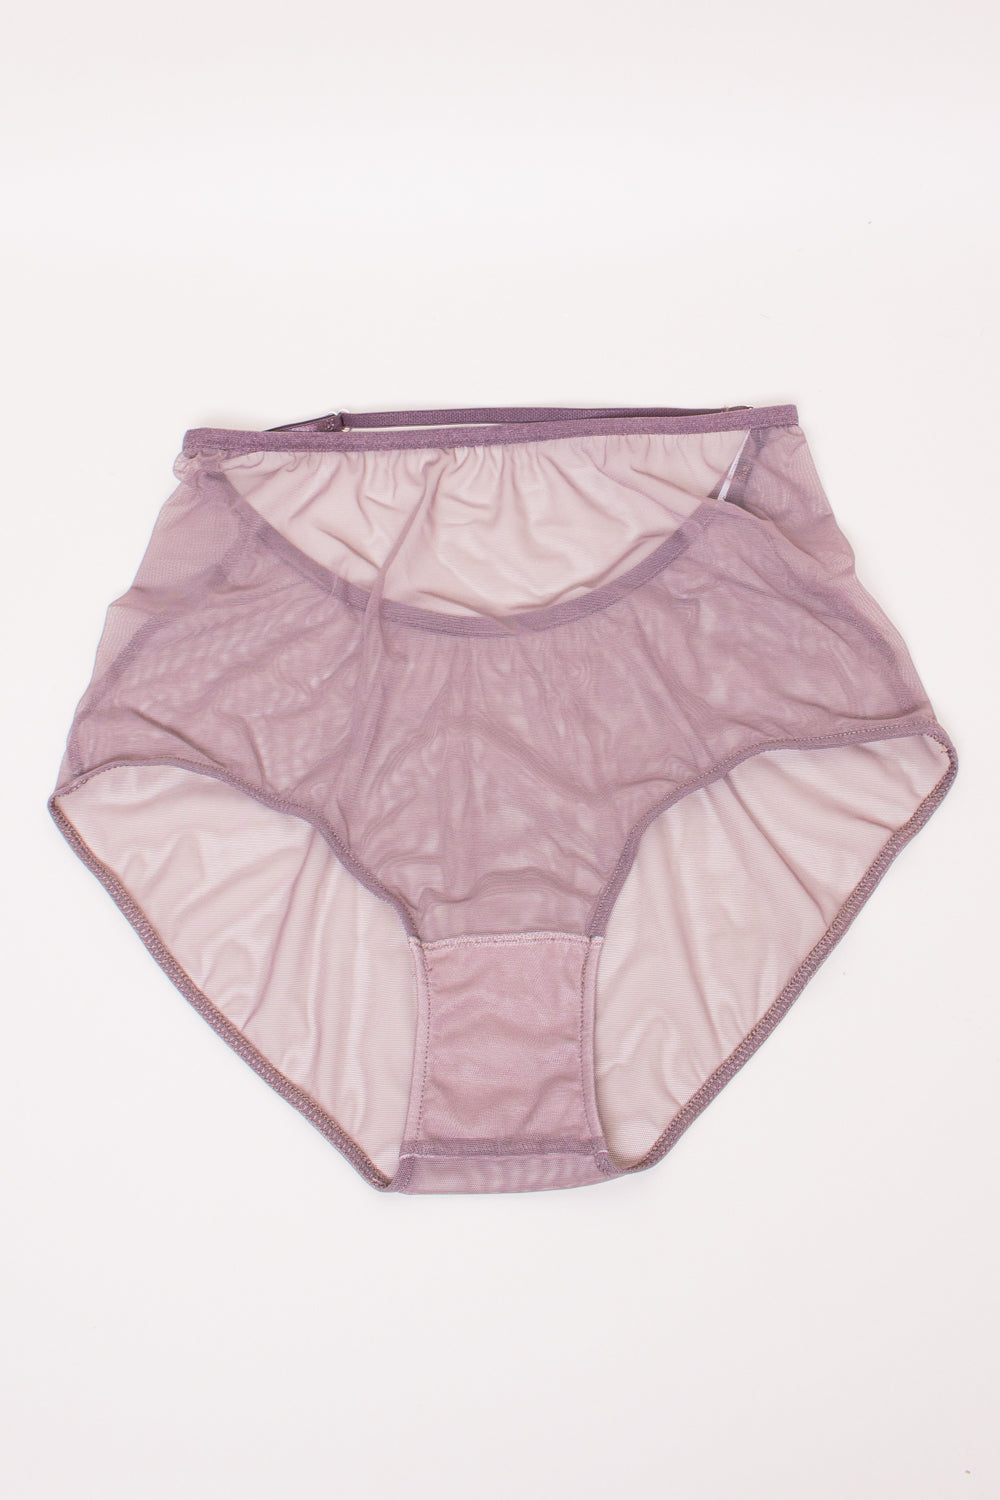 Whisper Ballerina Brief in Smokey